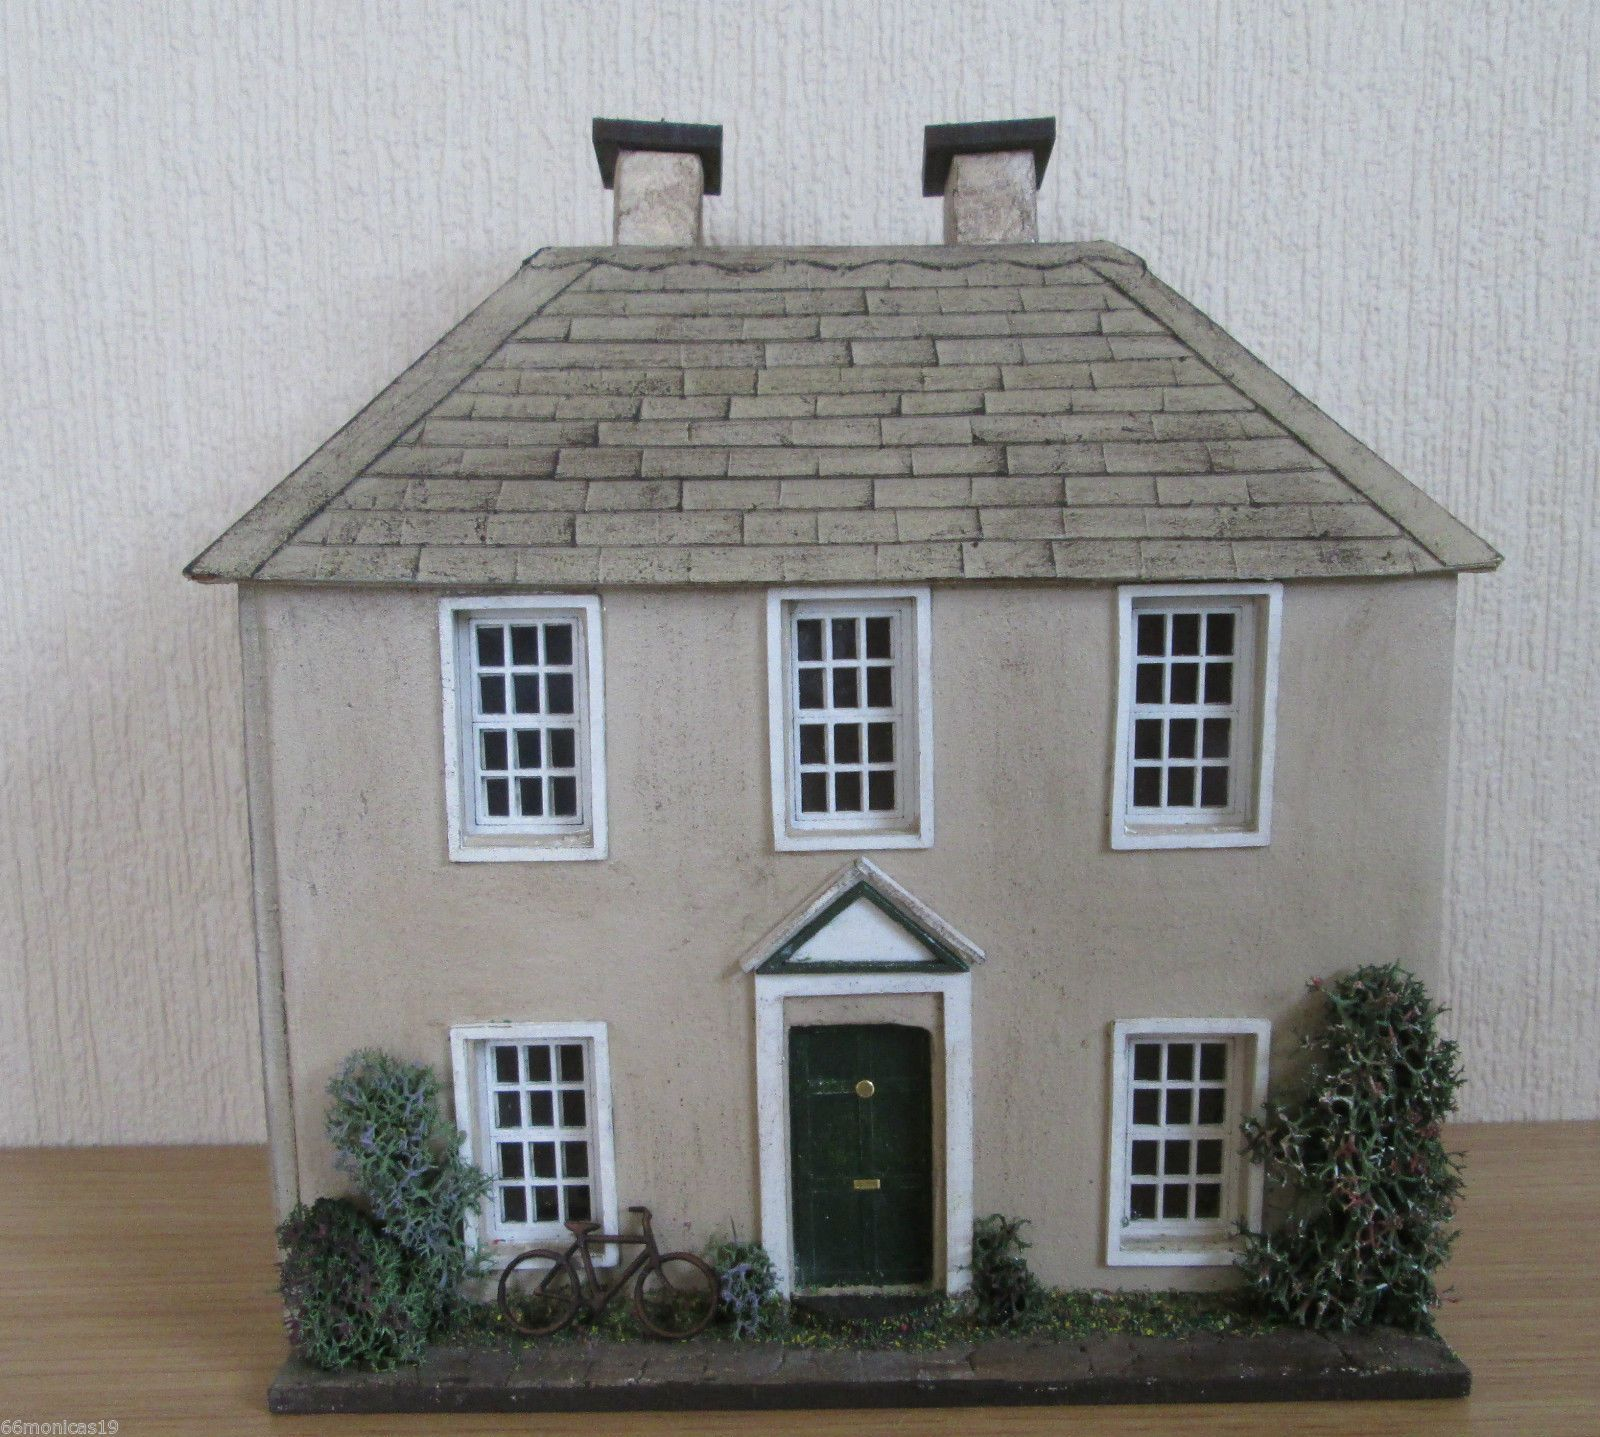 1/48 QUARTER SCALE GEORGIAN STYLE DOLLS HOUSE - HAND BUILT | eBay ...